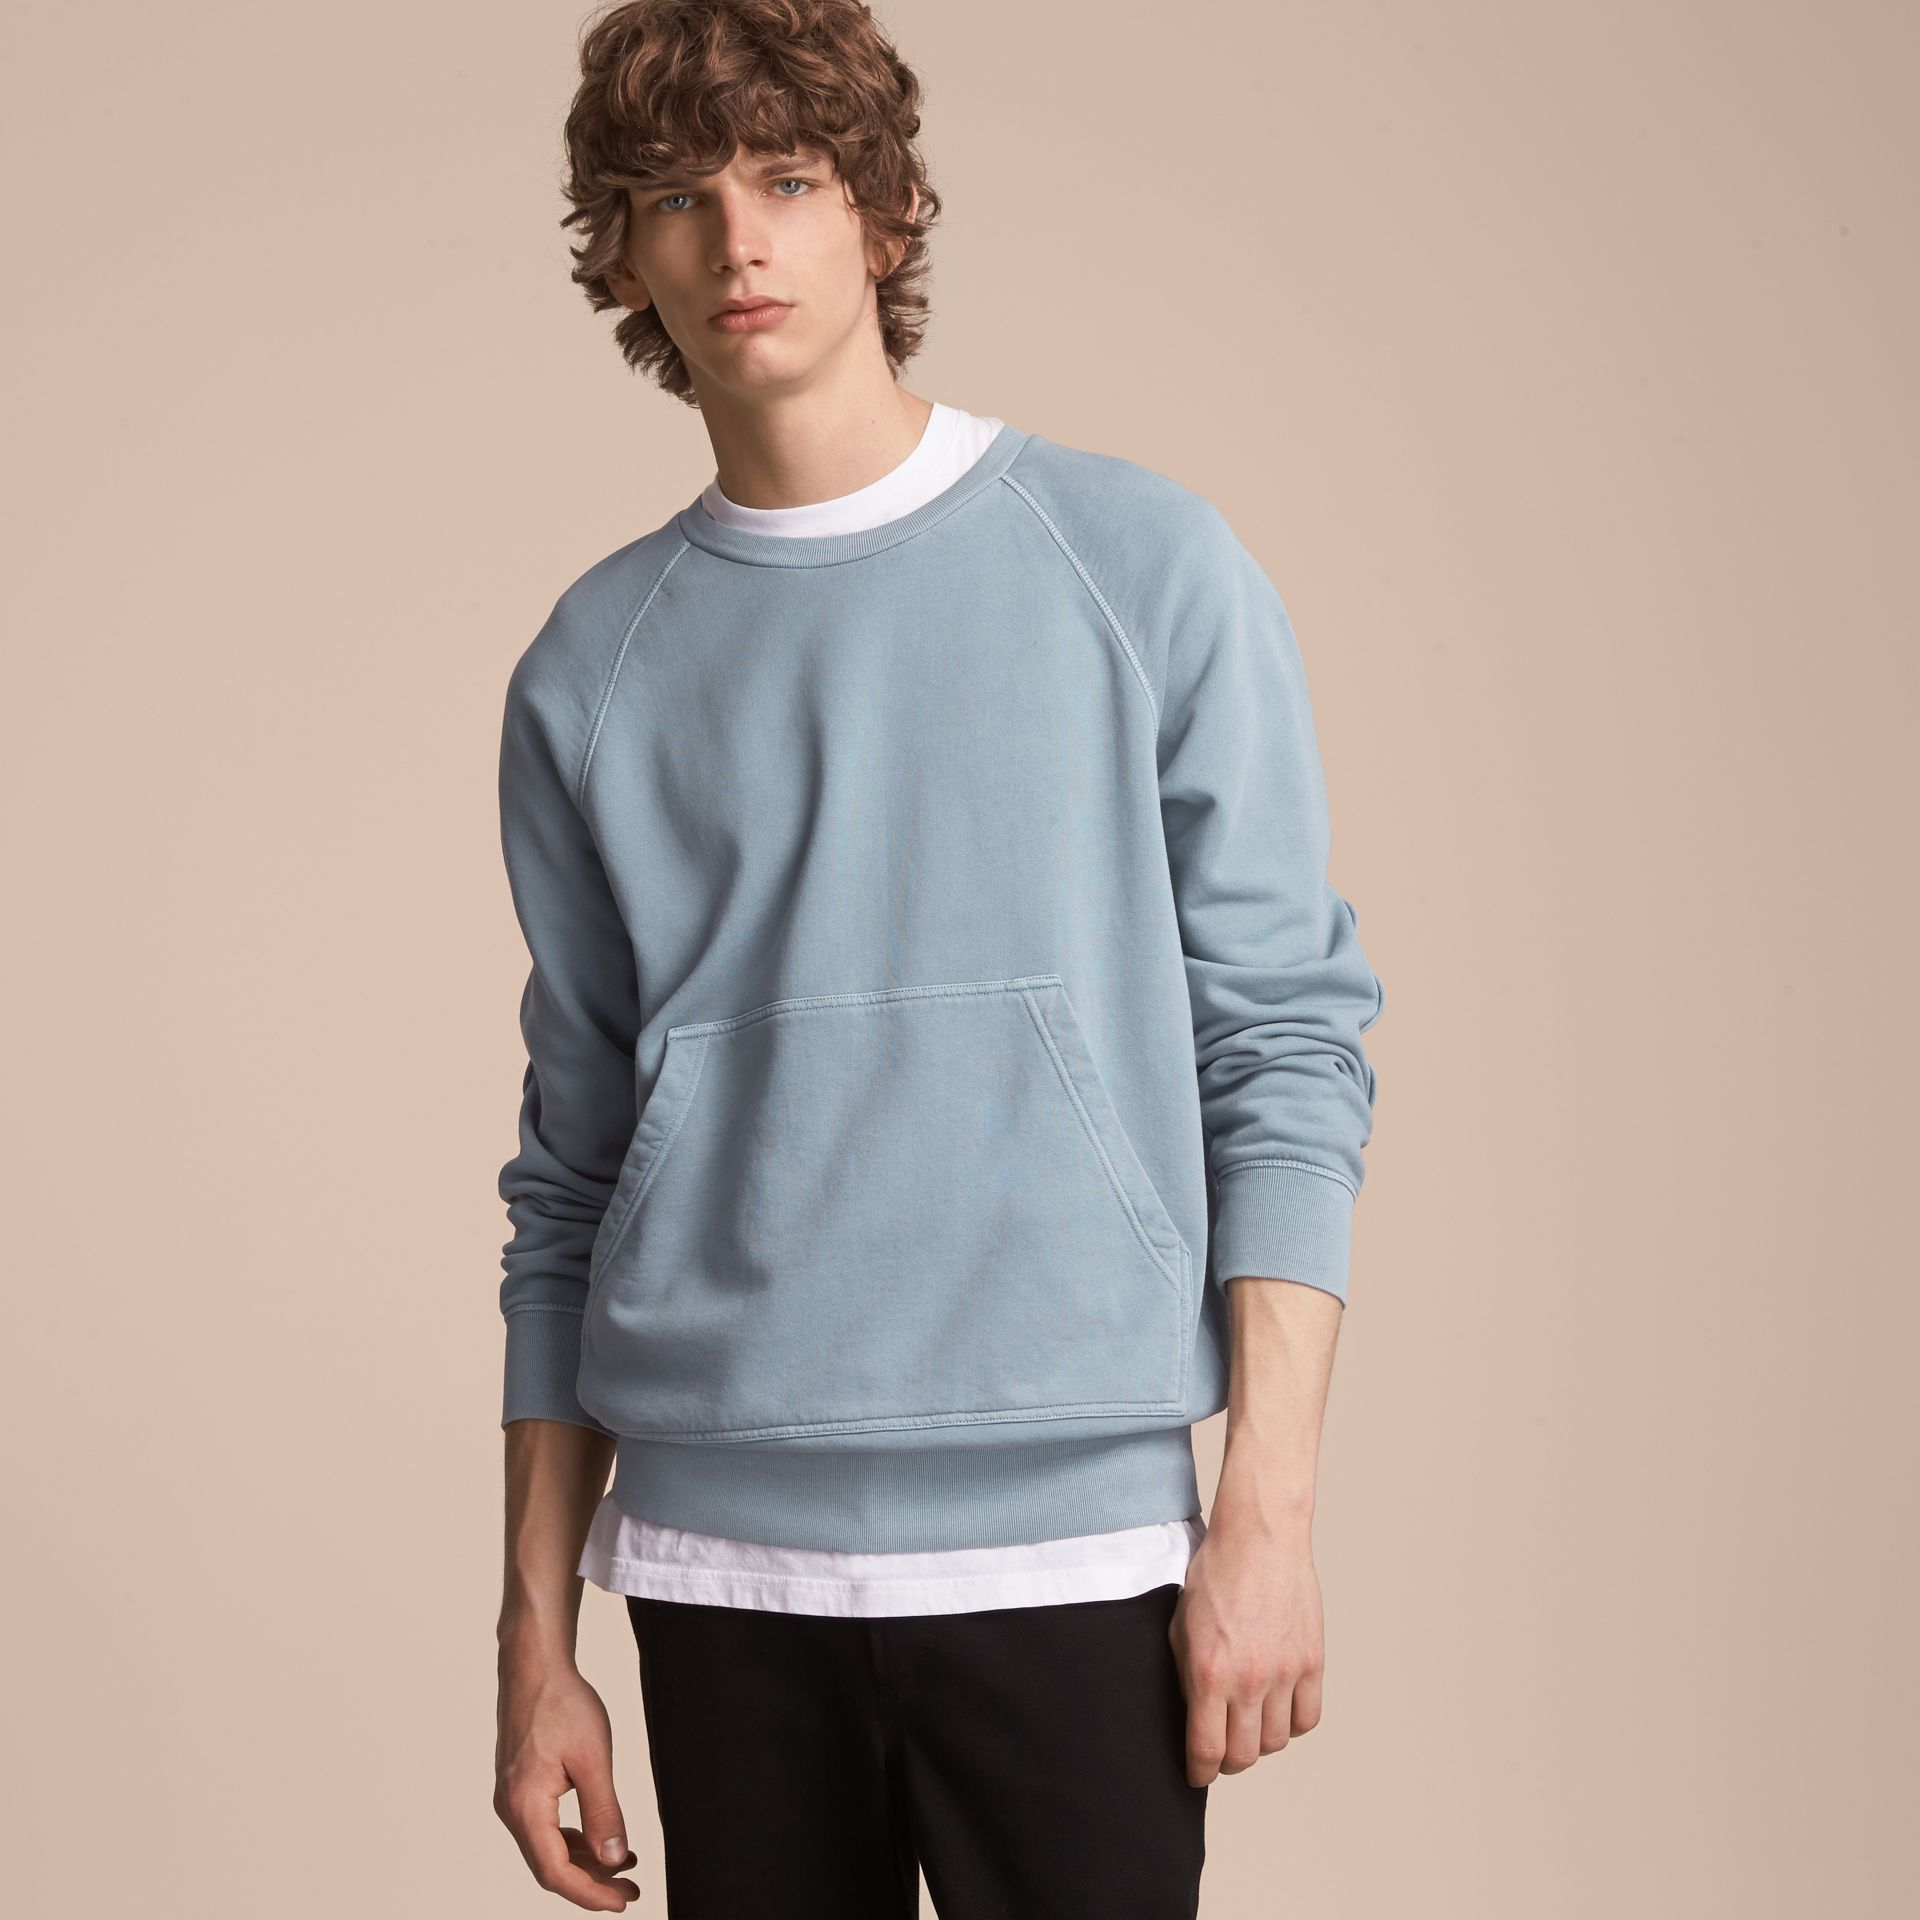 Unisex Pigment-dyed Cotton Oversize Sweatshirt in Dusty Blue - Men | Burberry Hong Kong - gallery image 6